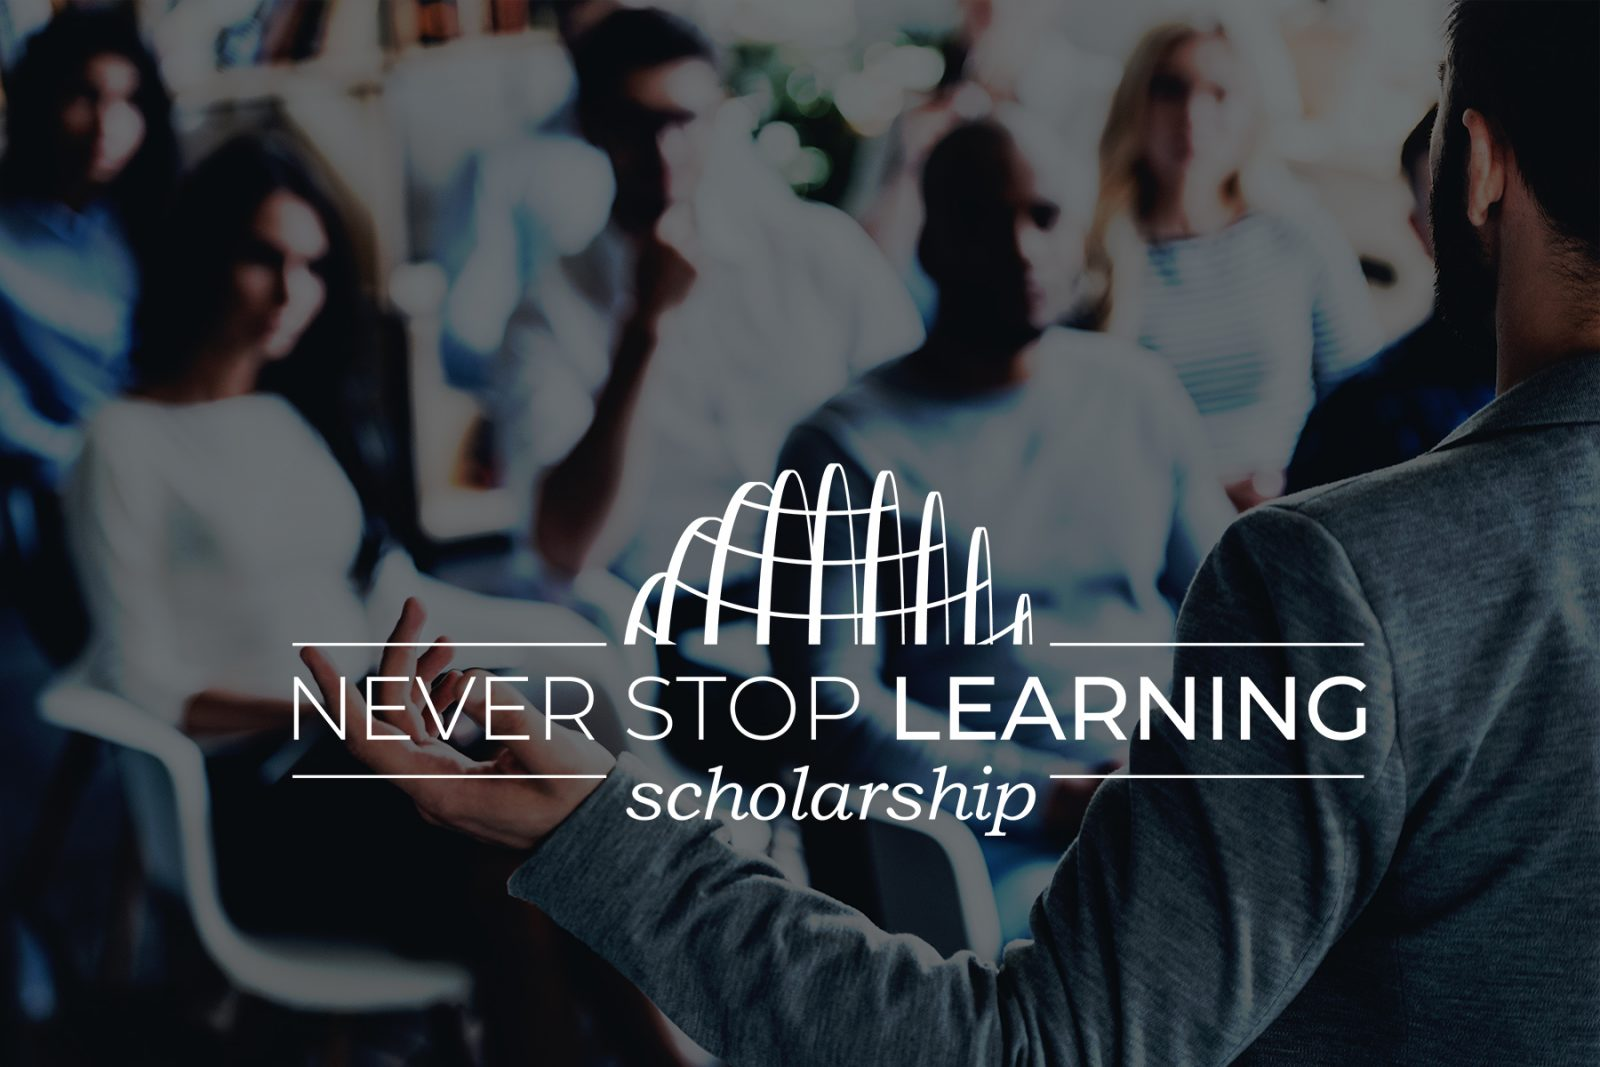 scholarship, header, never stop learning